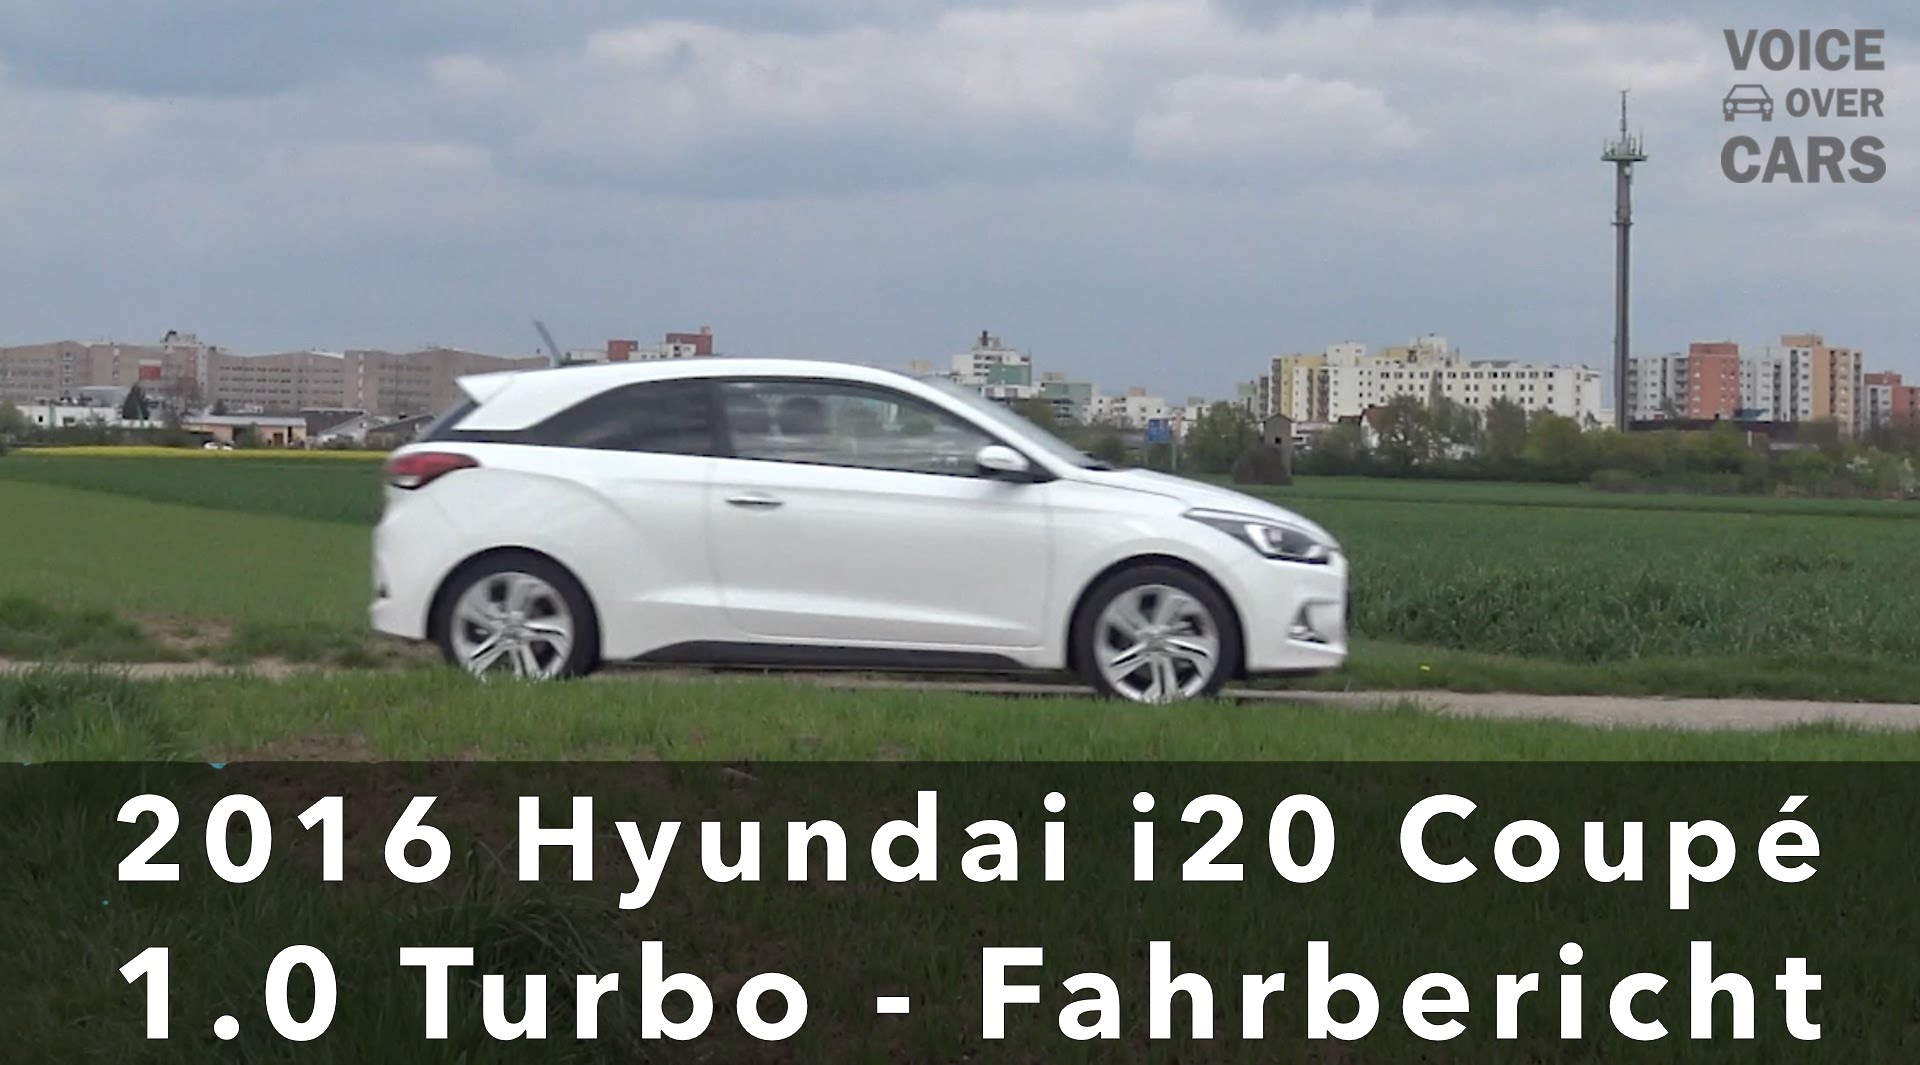 2016 Hyundai i20 Turbo Coupe Test Fahrbericht VLOG Review Voice over Cars